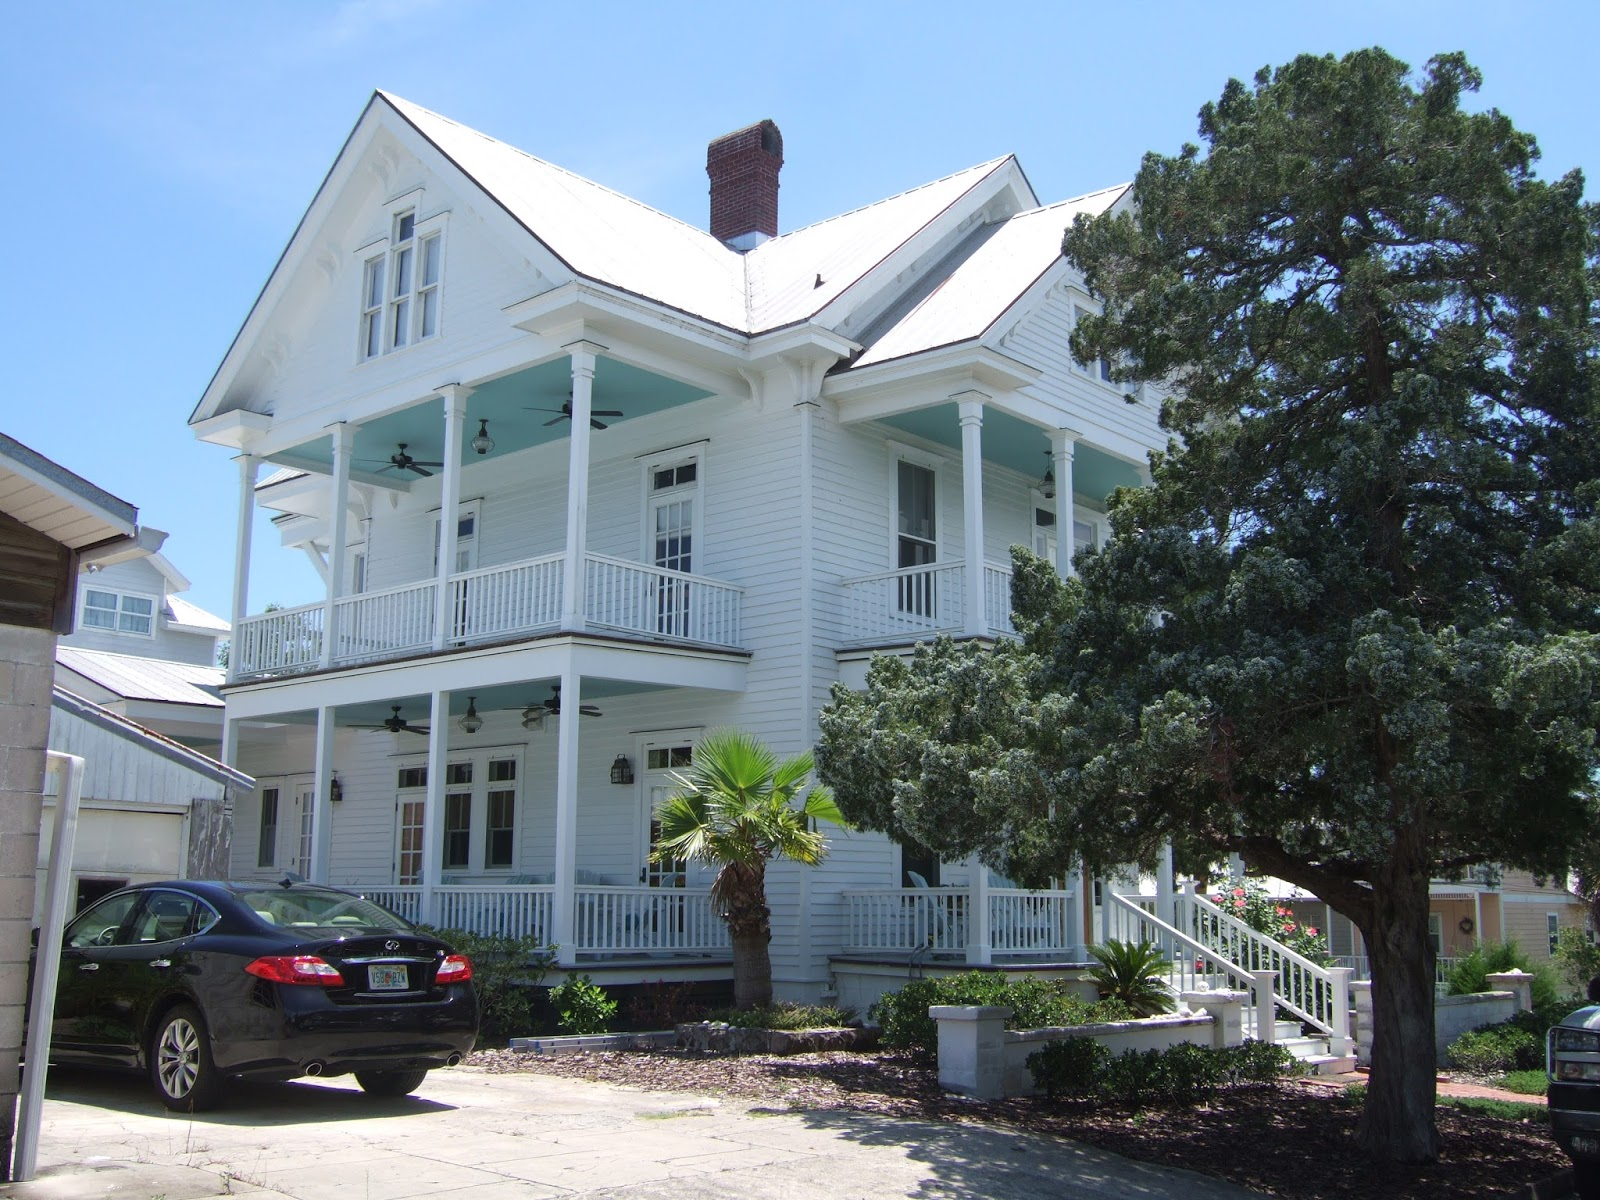 Surprising Easy Life Meal And Party Planning Cedar Key Old Florida Beauty Home Interior And Landscaping Transignezvosmurscom